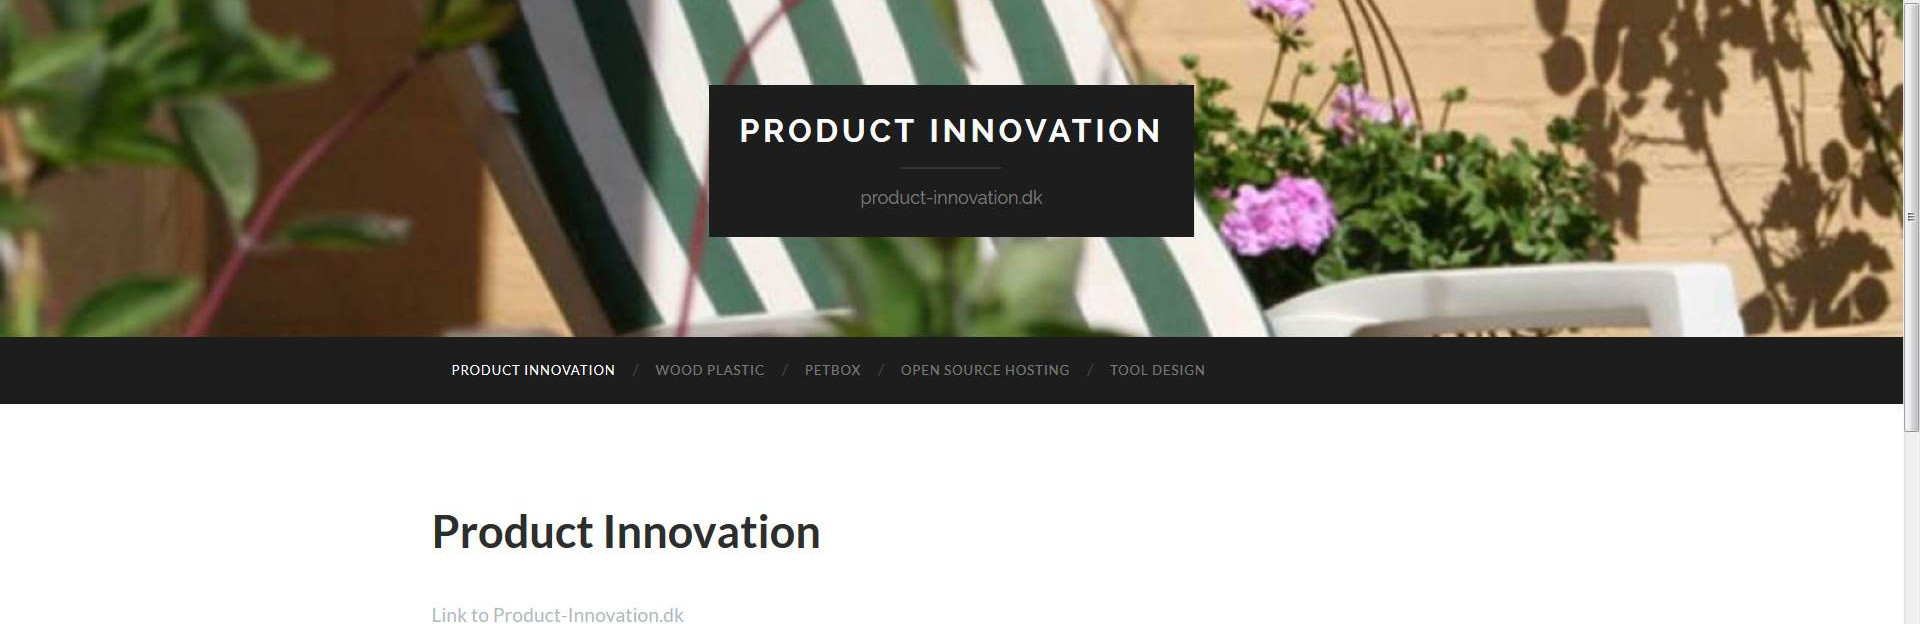 Product-Innovation.dk